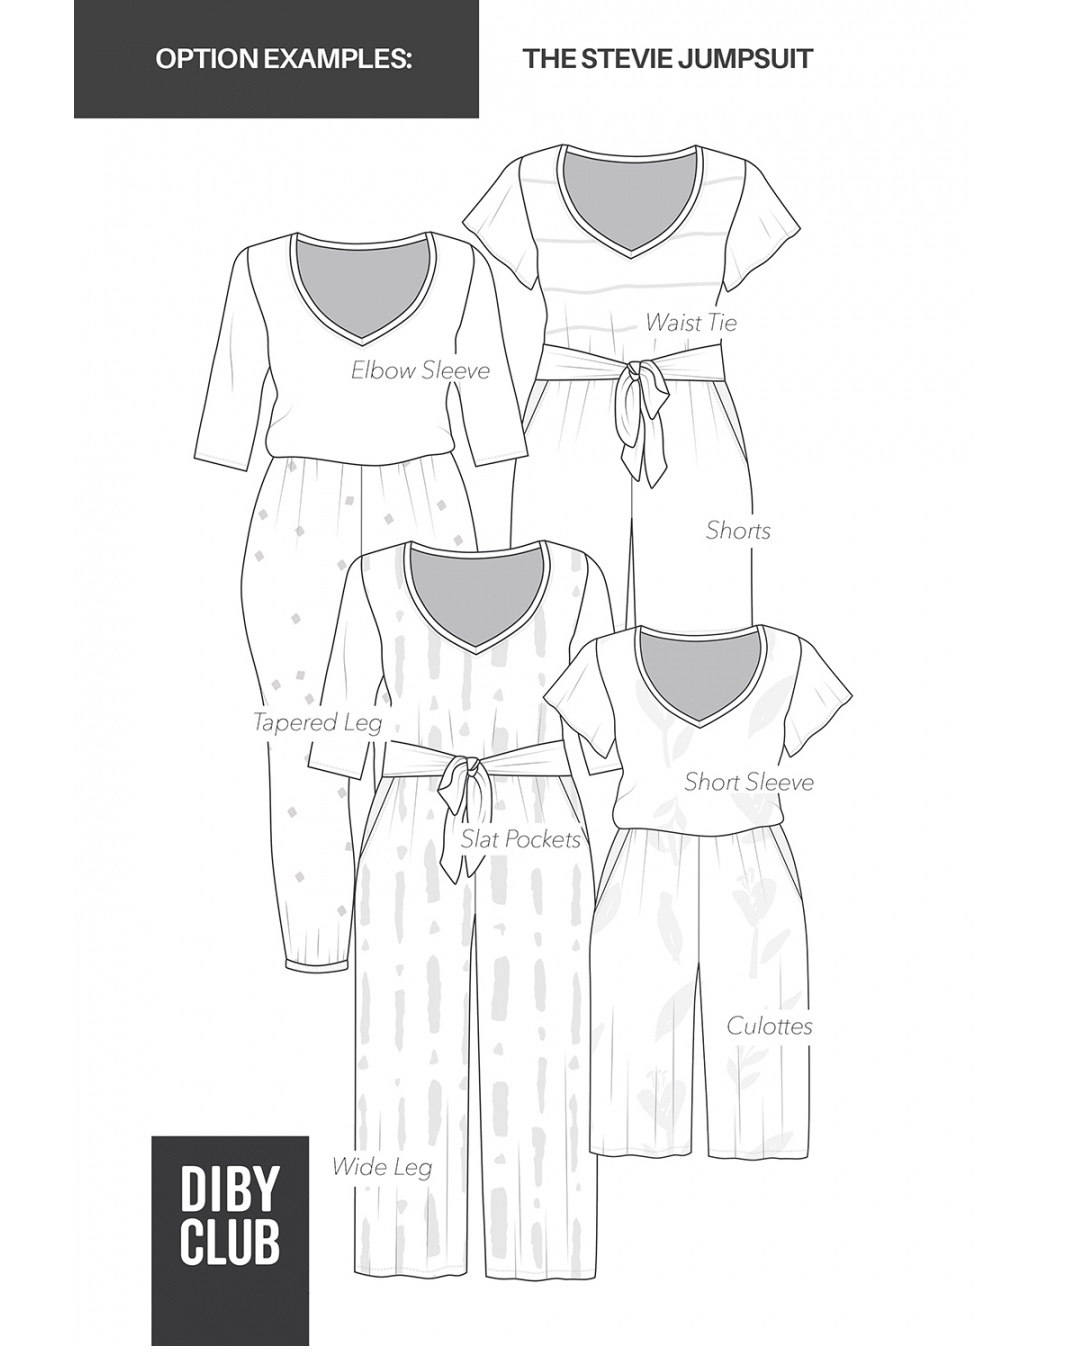 Stevie Jumpsuit from Diby Club